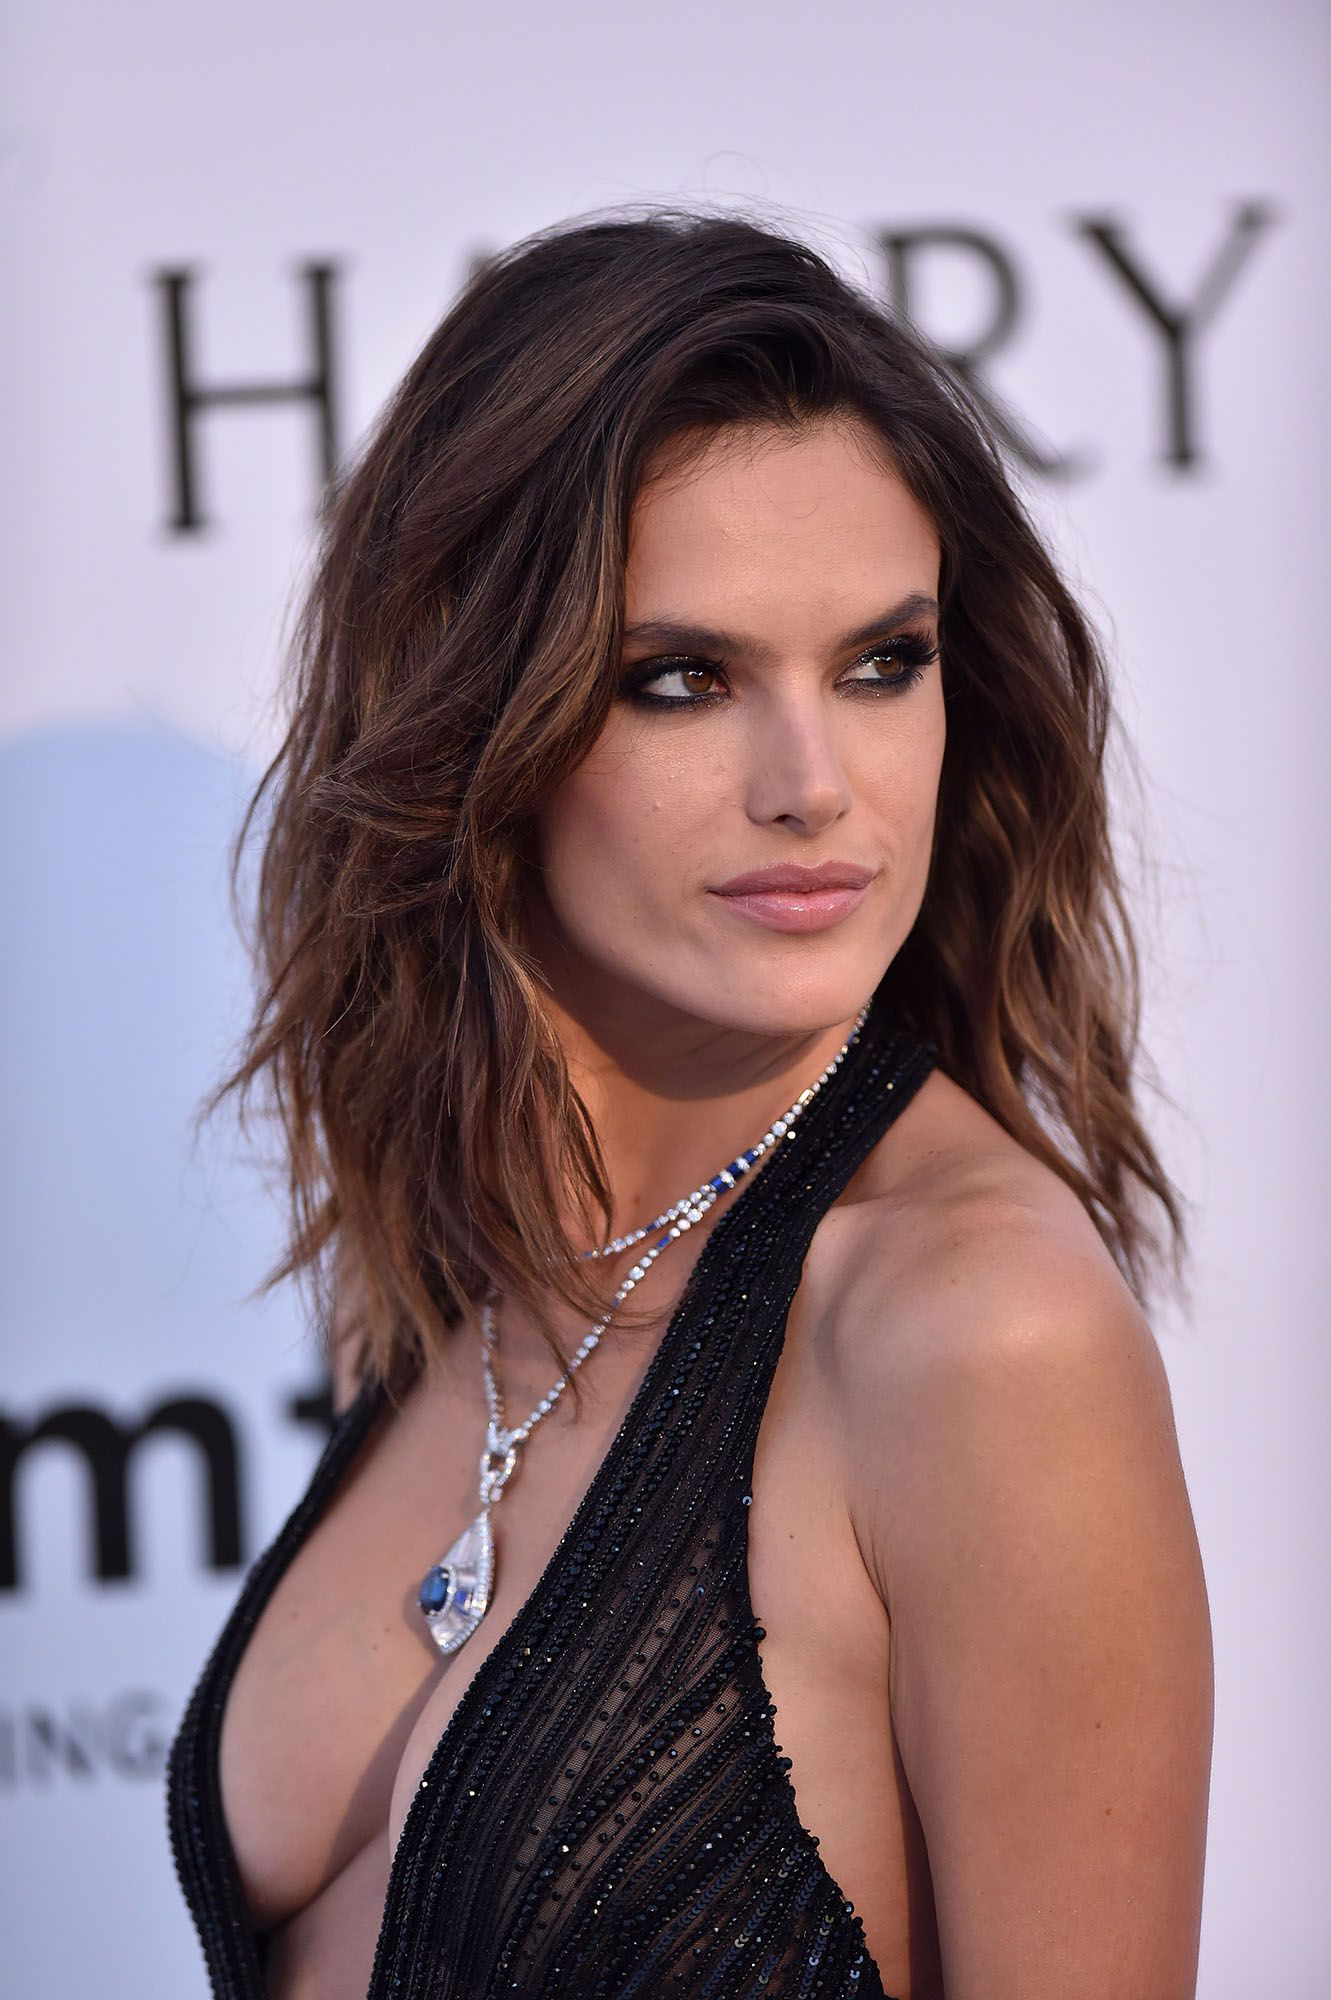 Cleavage Alessandra Ambrosio nude (71 photos), Pussy, Hot, Selfie, bra 2018